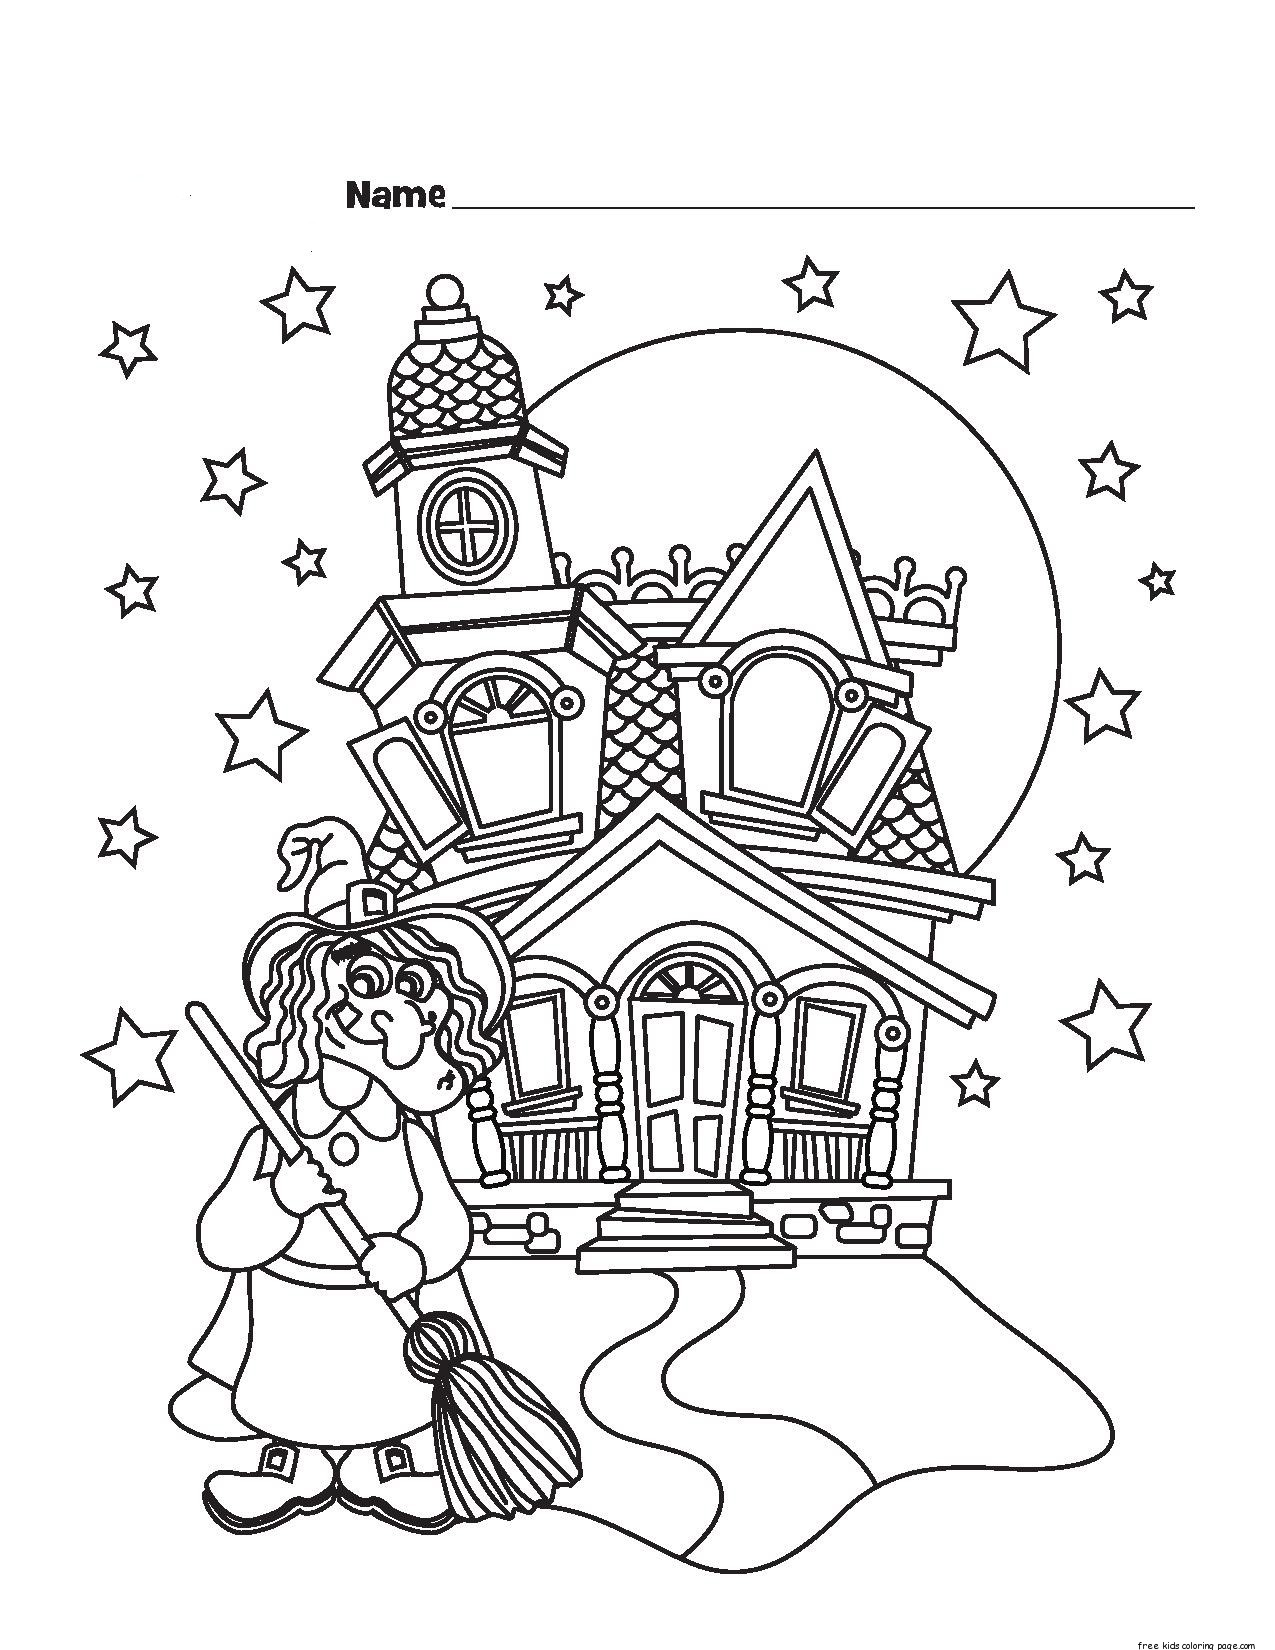 free printable castle coloring pages - printable halloween witch castle coloring pagesfree